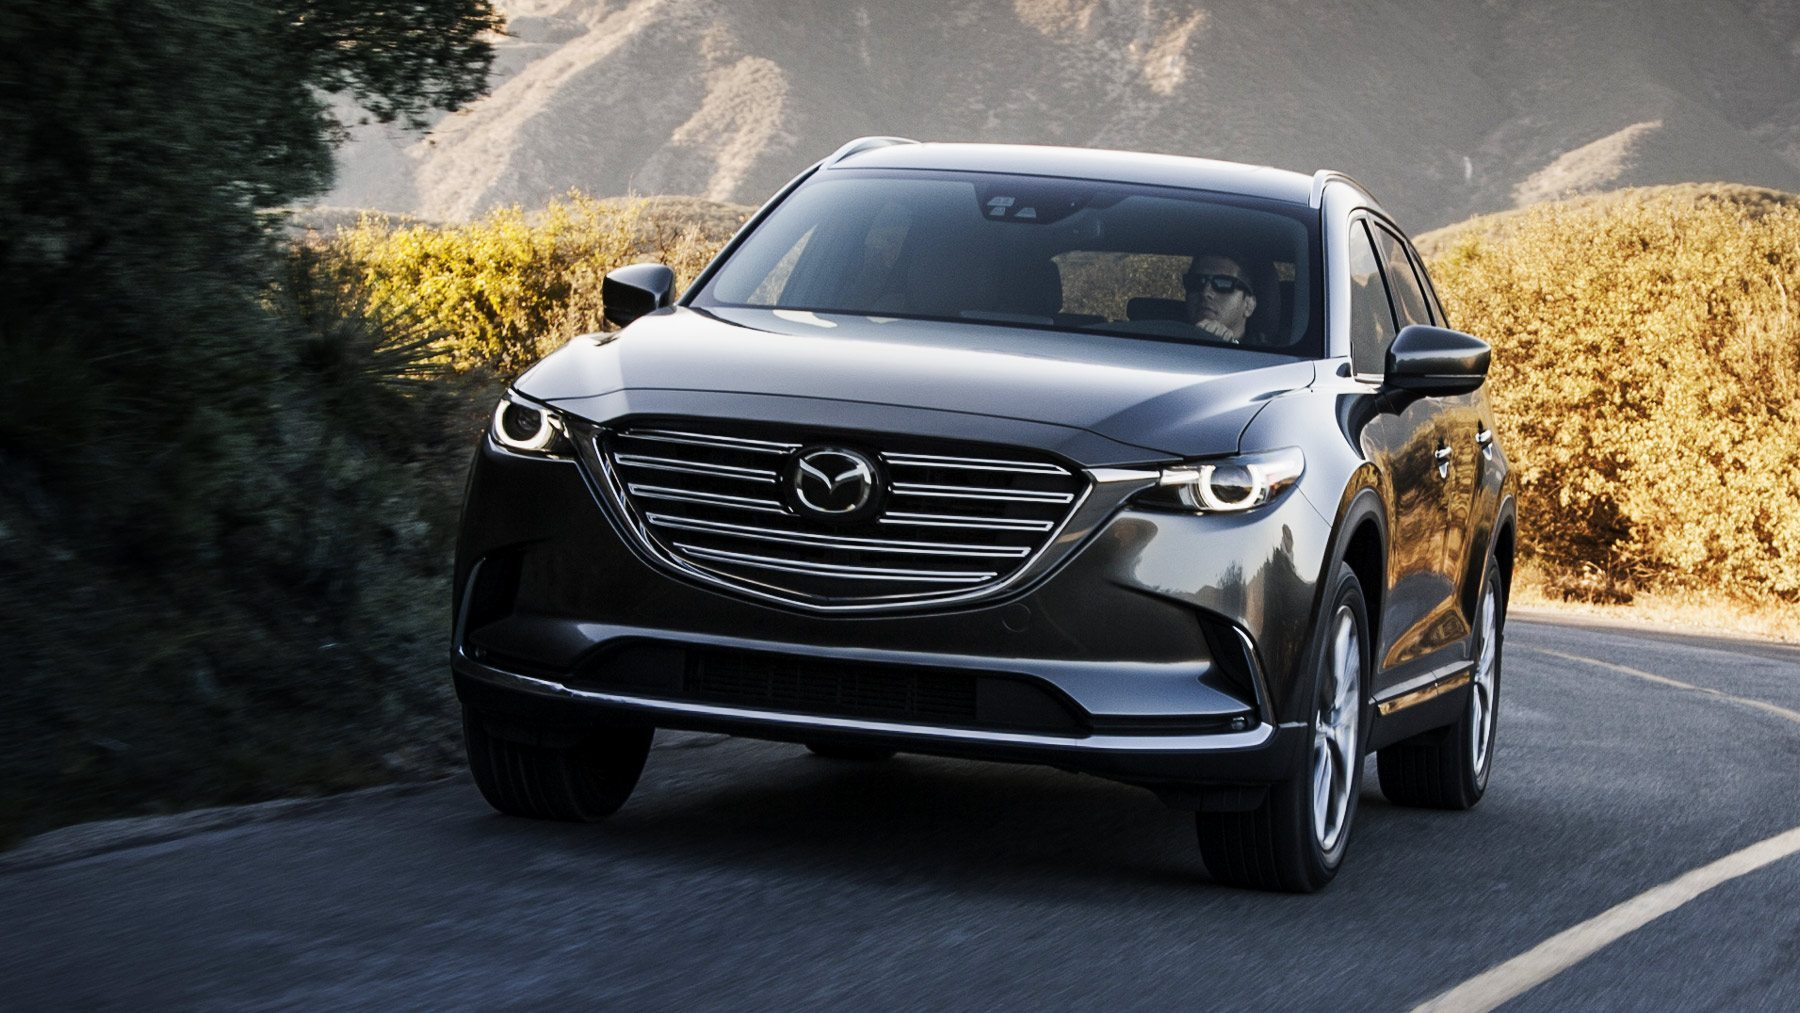 2018 Mazda Cx 9 2 5t Gt Awd Price In Uae Specs Amp Review